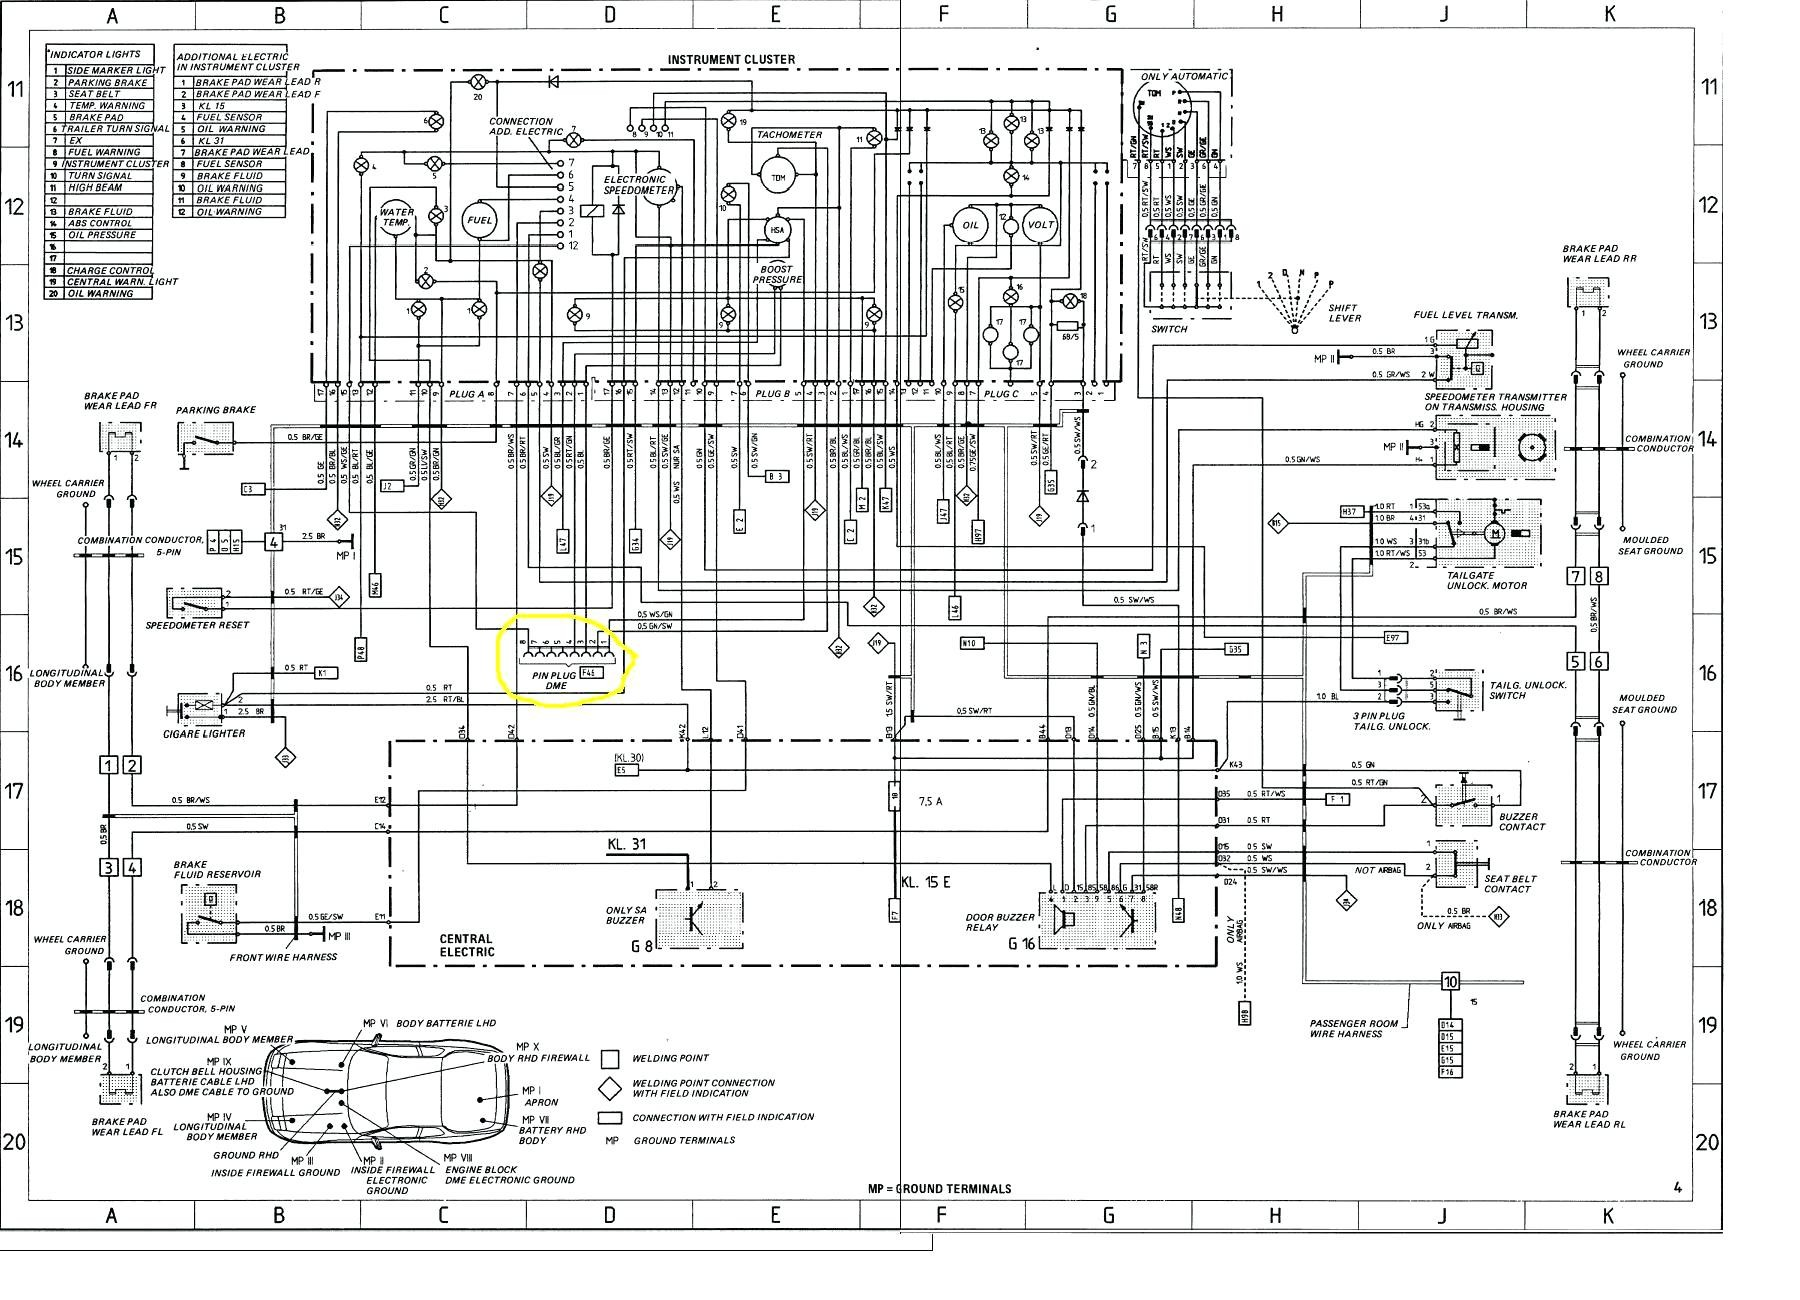 96 Chevy Caprice Wiring Diagram For Engine Compartment